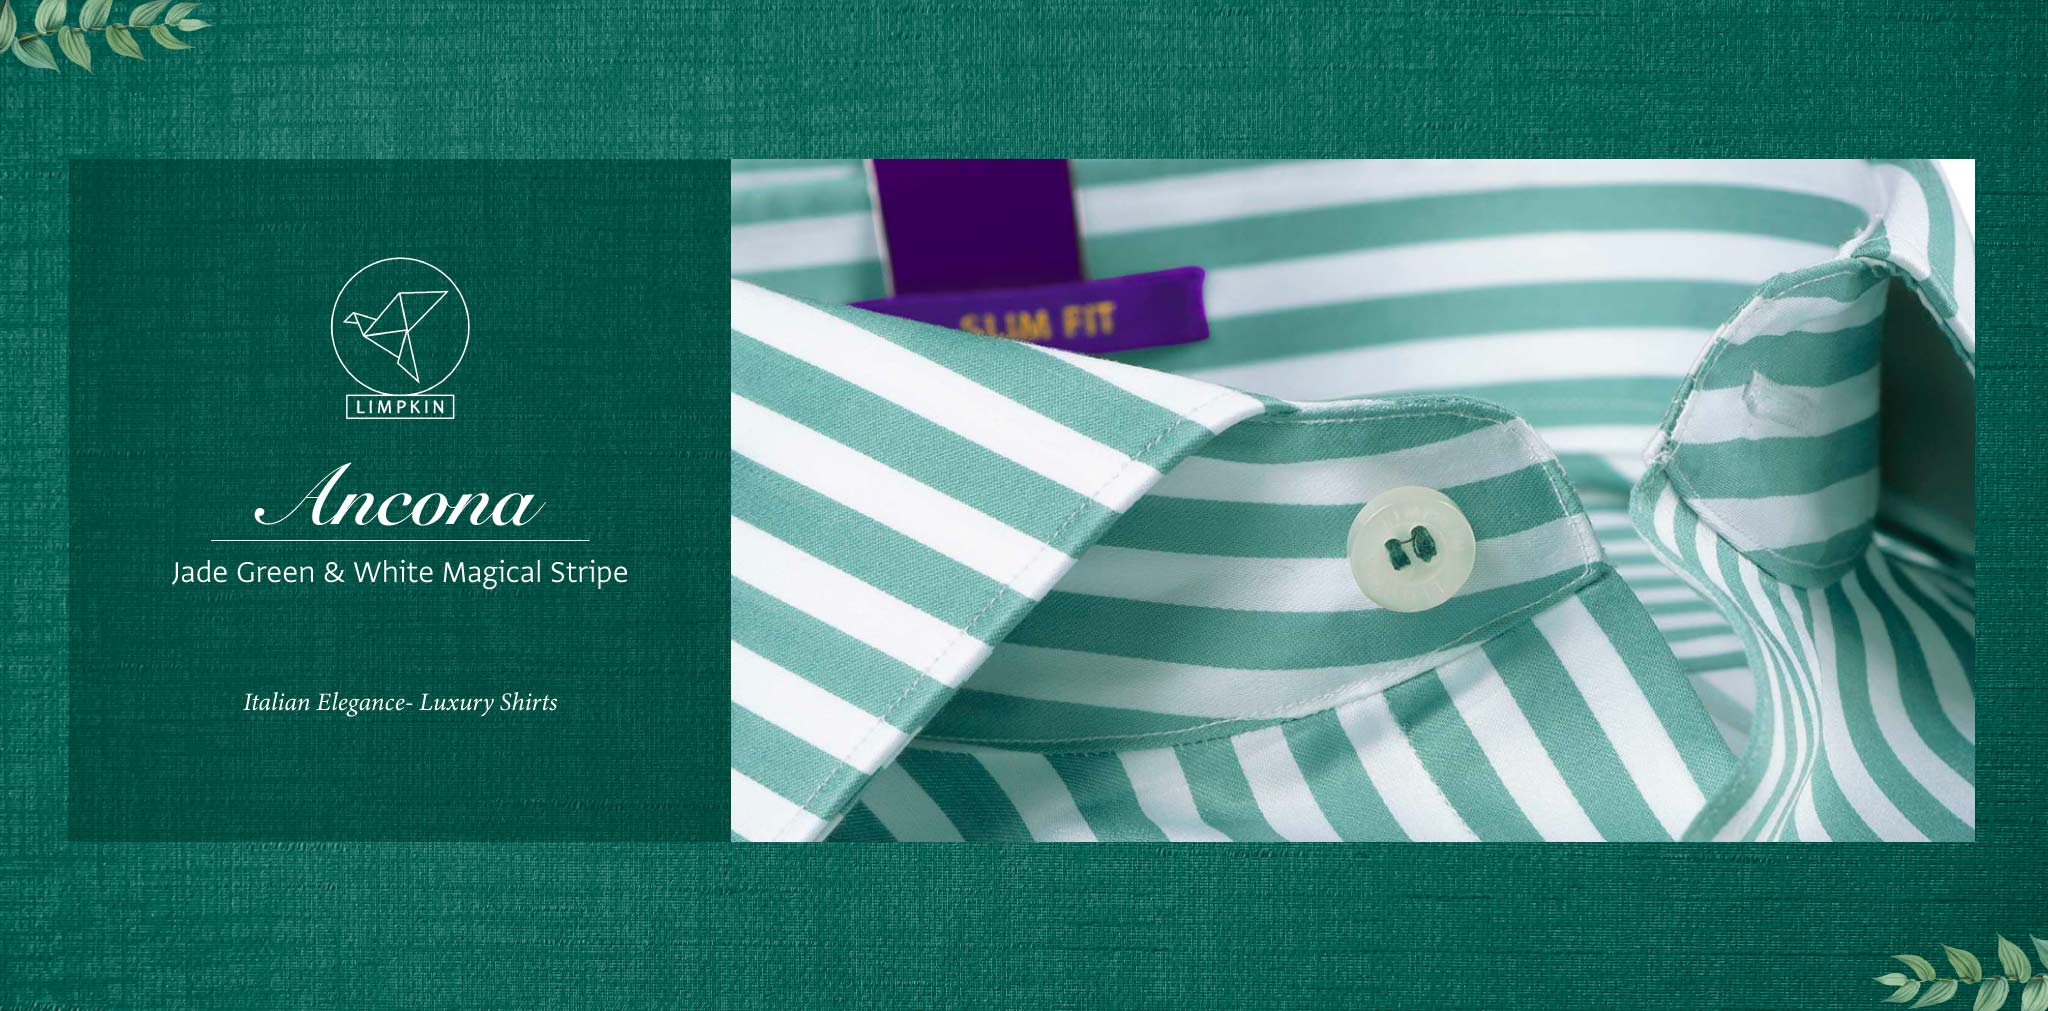 Ancona- Jade Green & White Magical Stripe- 2 Ply Pure Egyptian Giza Cotton- Delivery from 10th March - Banner